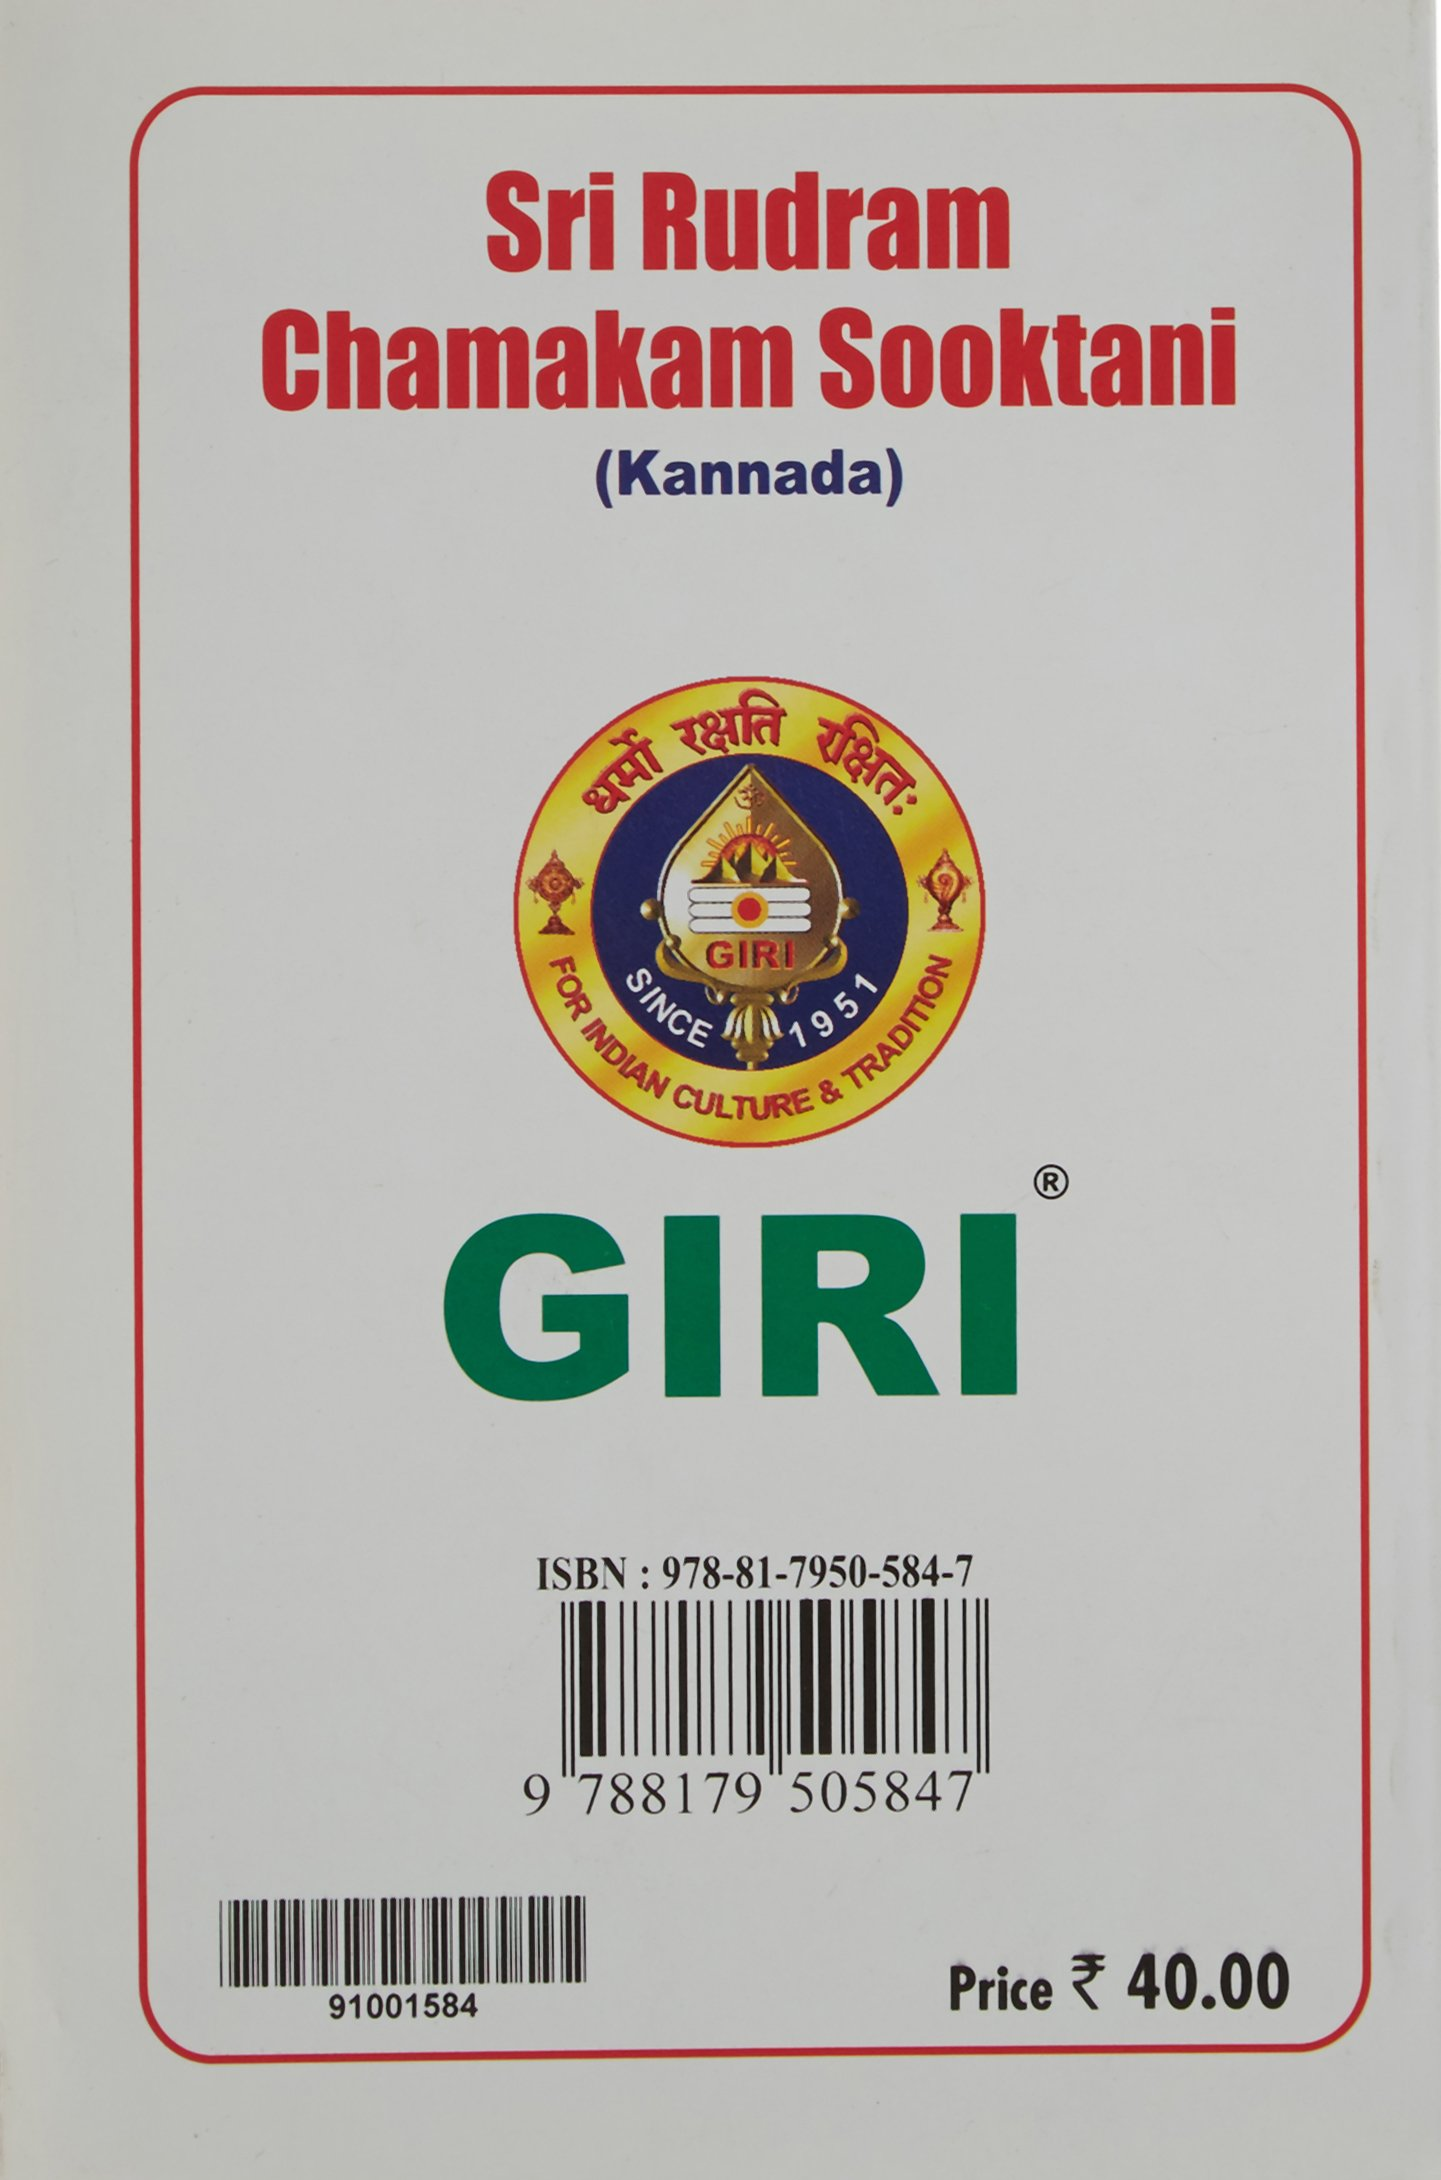 Buy sri rudram chamakam sooktani book online at low prices in india buy sri rudram chamakam sooktani book online at low prices in india sri rudram chamakam sooktani reviews ratings amazon fandeluxe